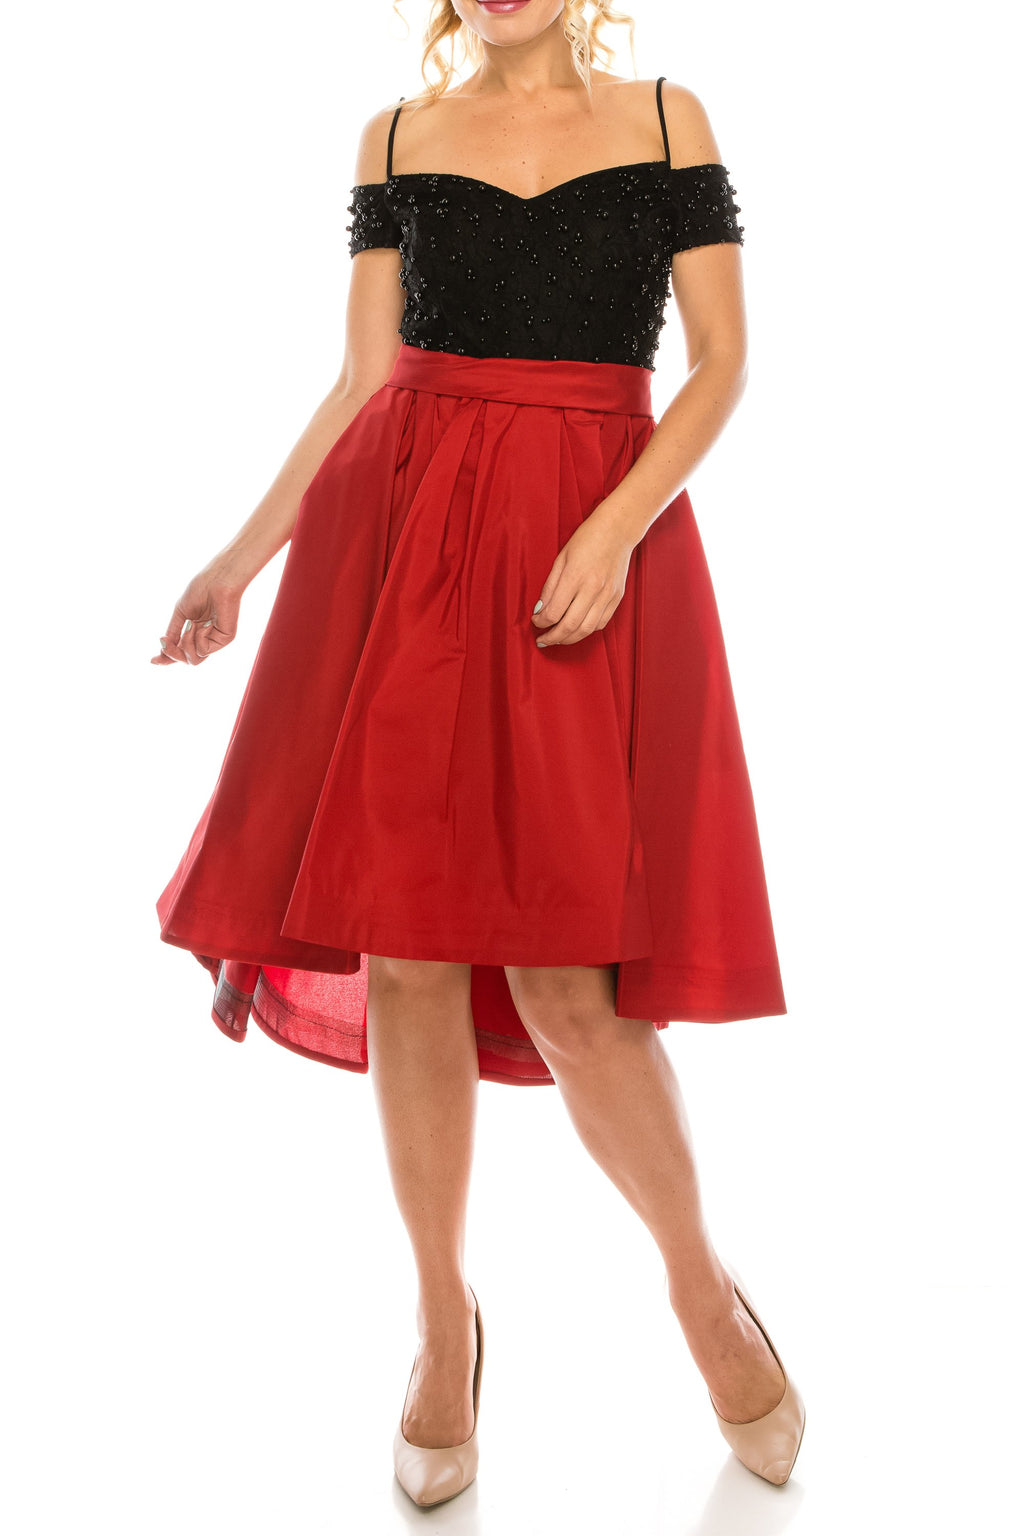 Odrella Red Cold Shoulder Circle Skirt Party Dress